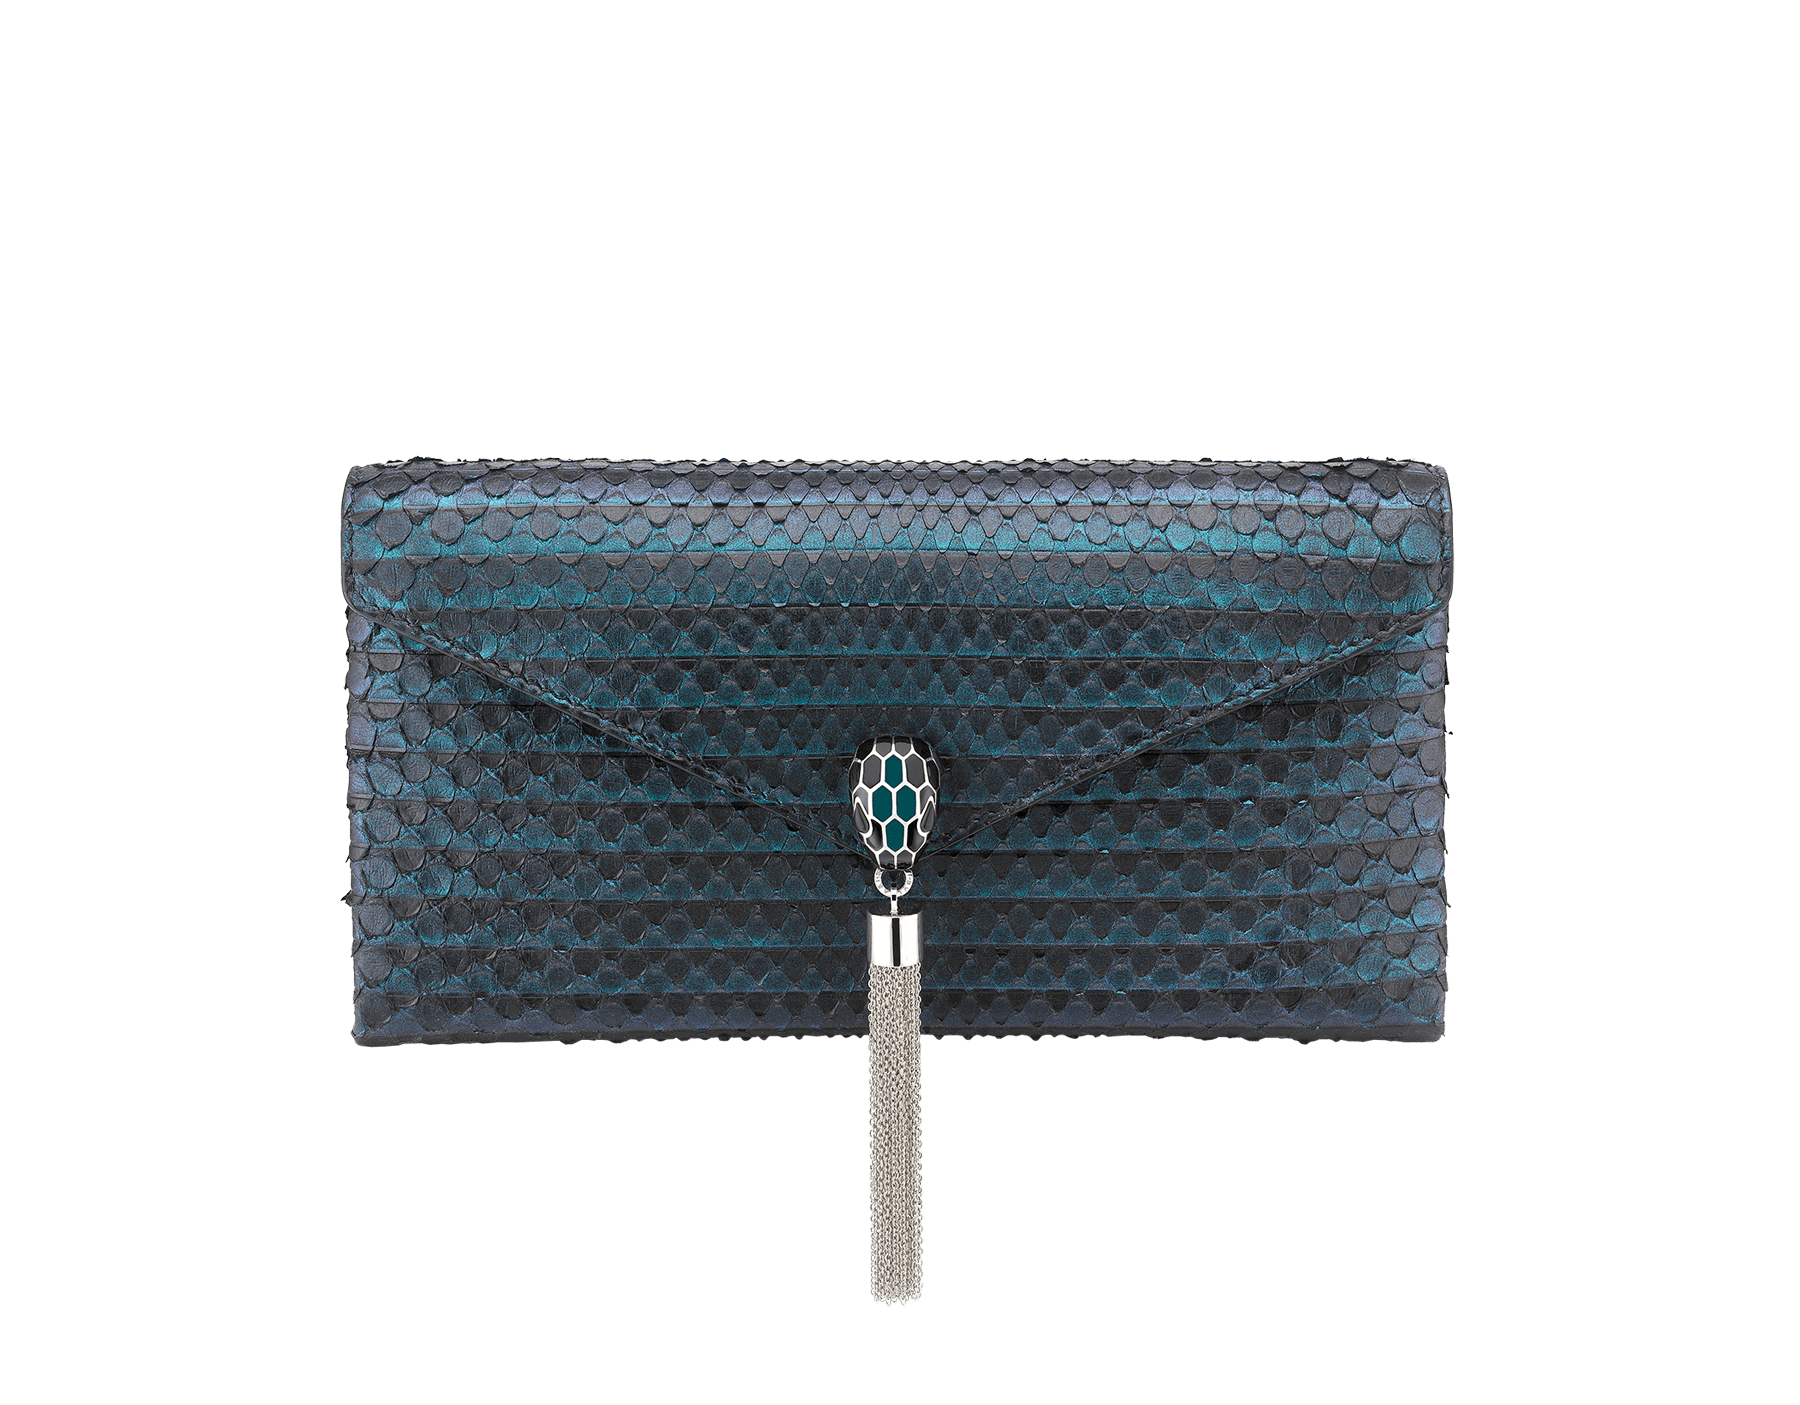 """Serpenti"" evening clutch bag in deep jade Plissé python skin. Iconic snakehead stud closure with tassel in palladium plated brass enriched with black and deep jade enamel and black onyx eyes. 288168 image 1"